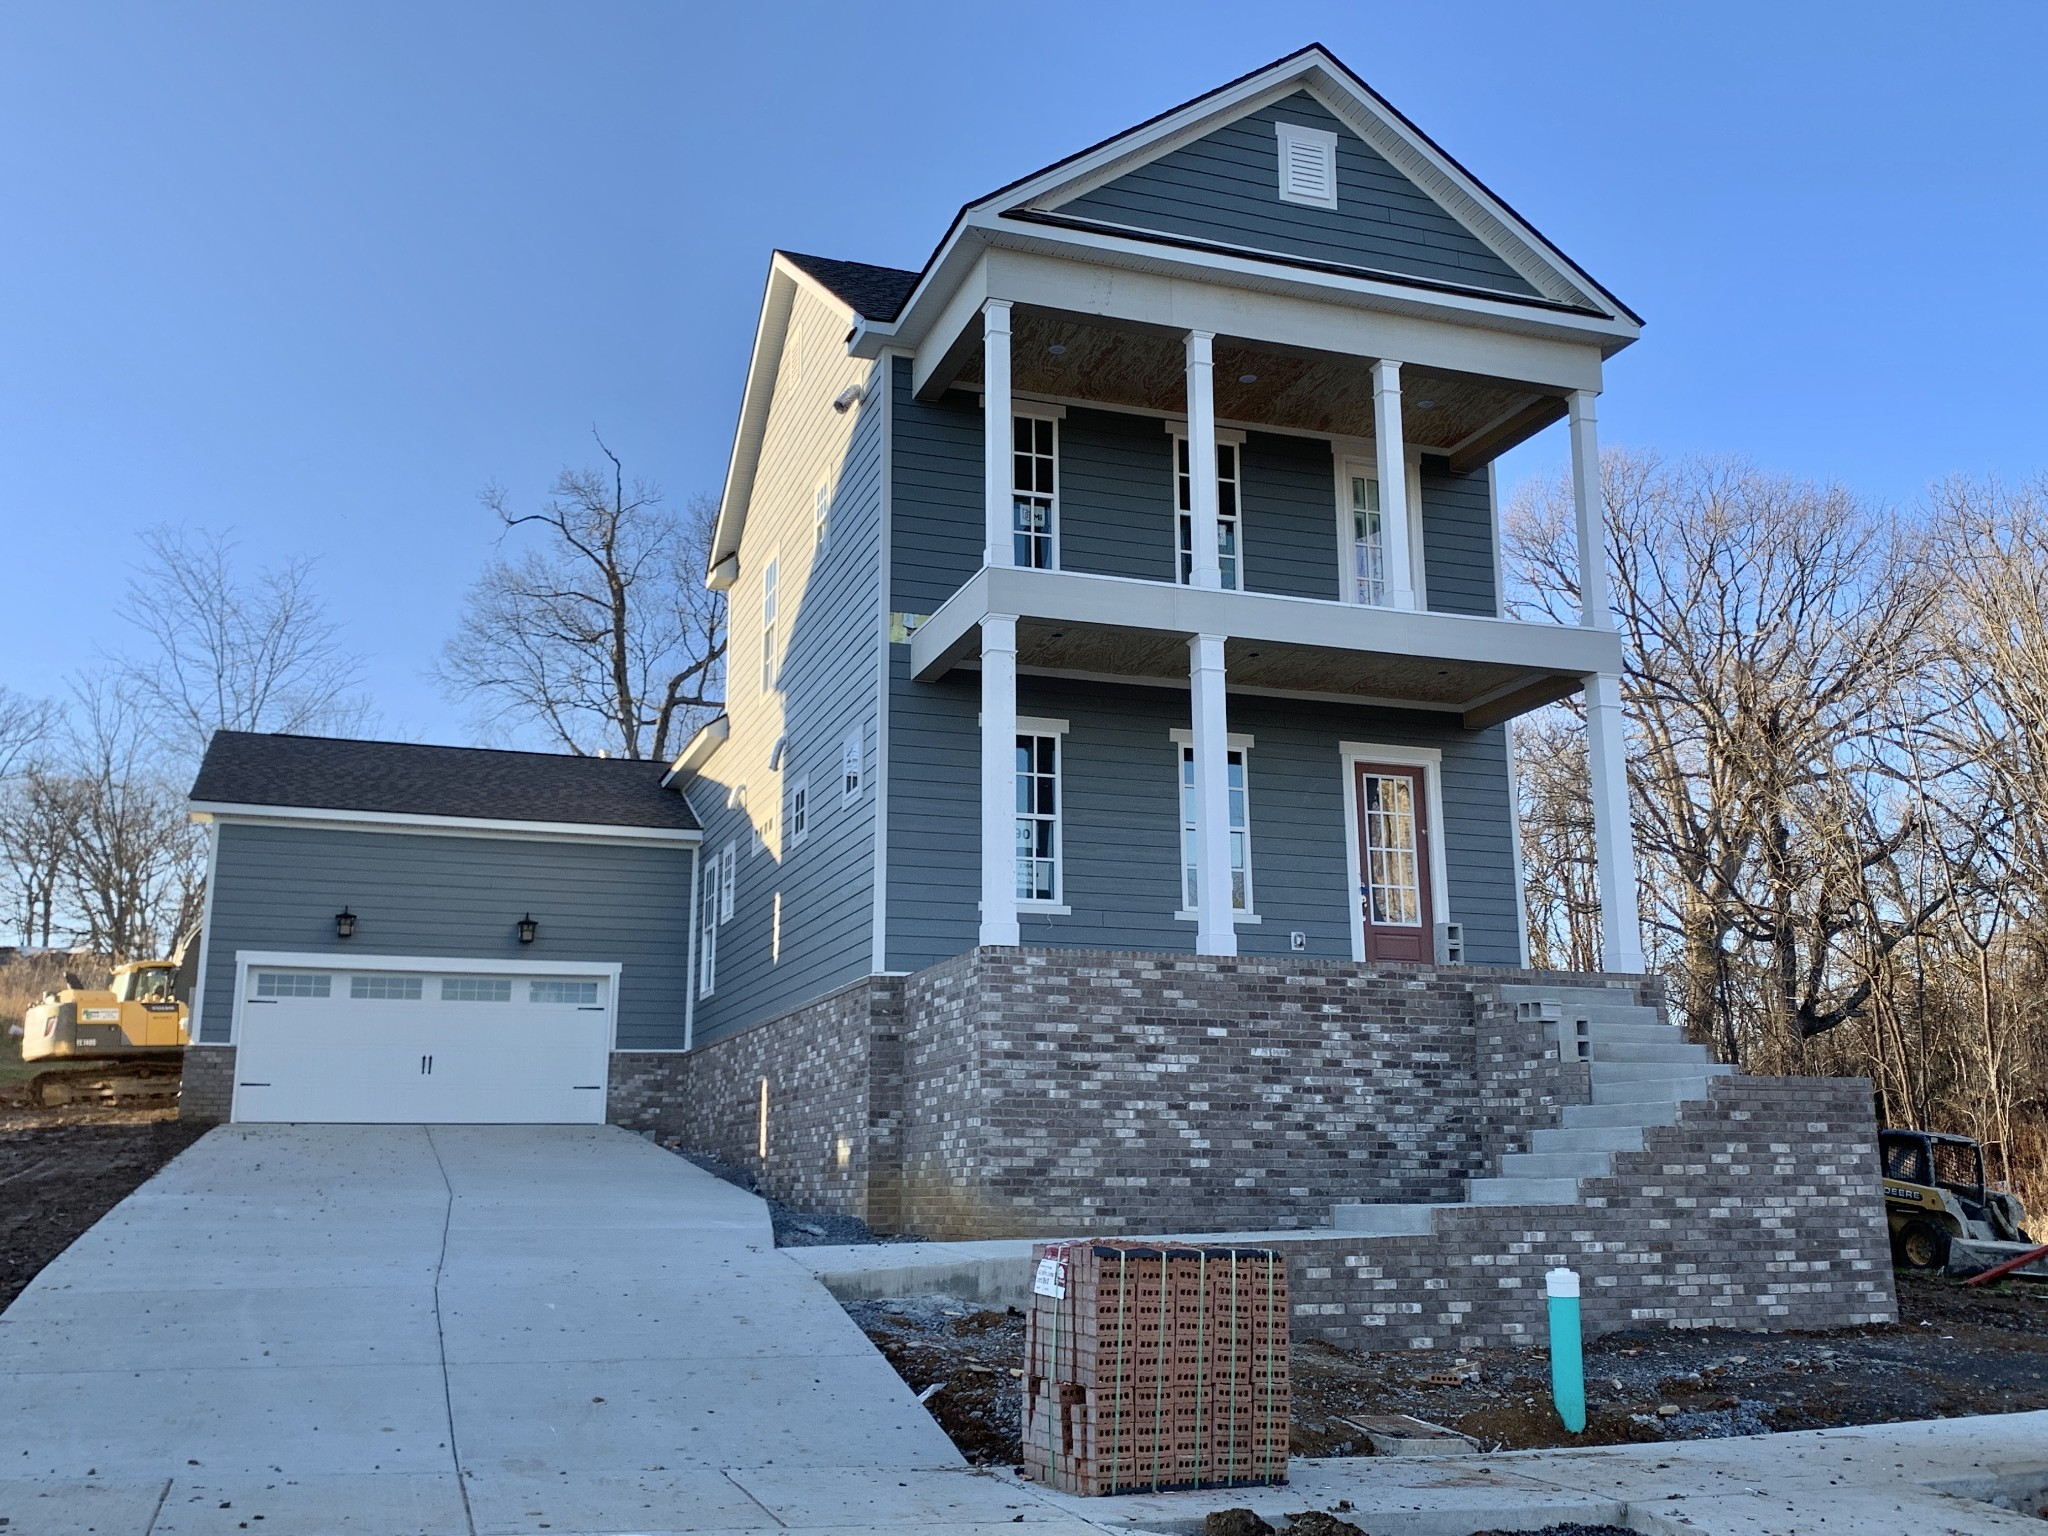 Double Balcony, Master Down, Gas Fireplace, Covered Back Porch